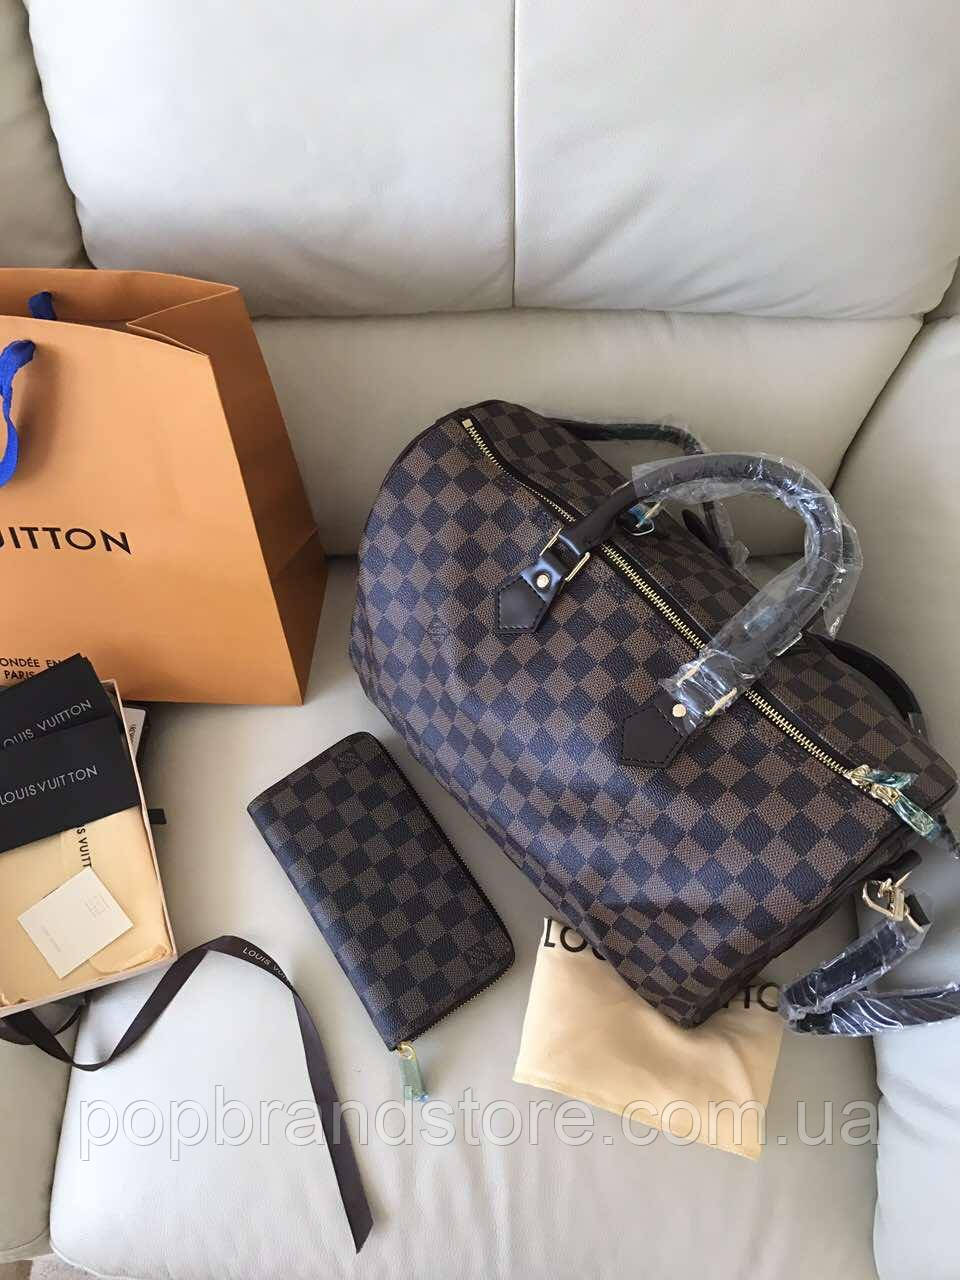 bd8257ed59f7 Стильная женская сумка LOUIS VUITTON SPEEDY DAMIER 35 см (реплика) - Pop  Brand Store